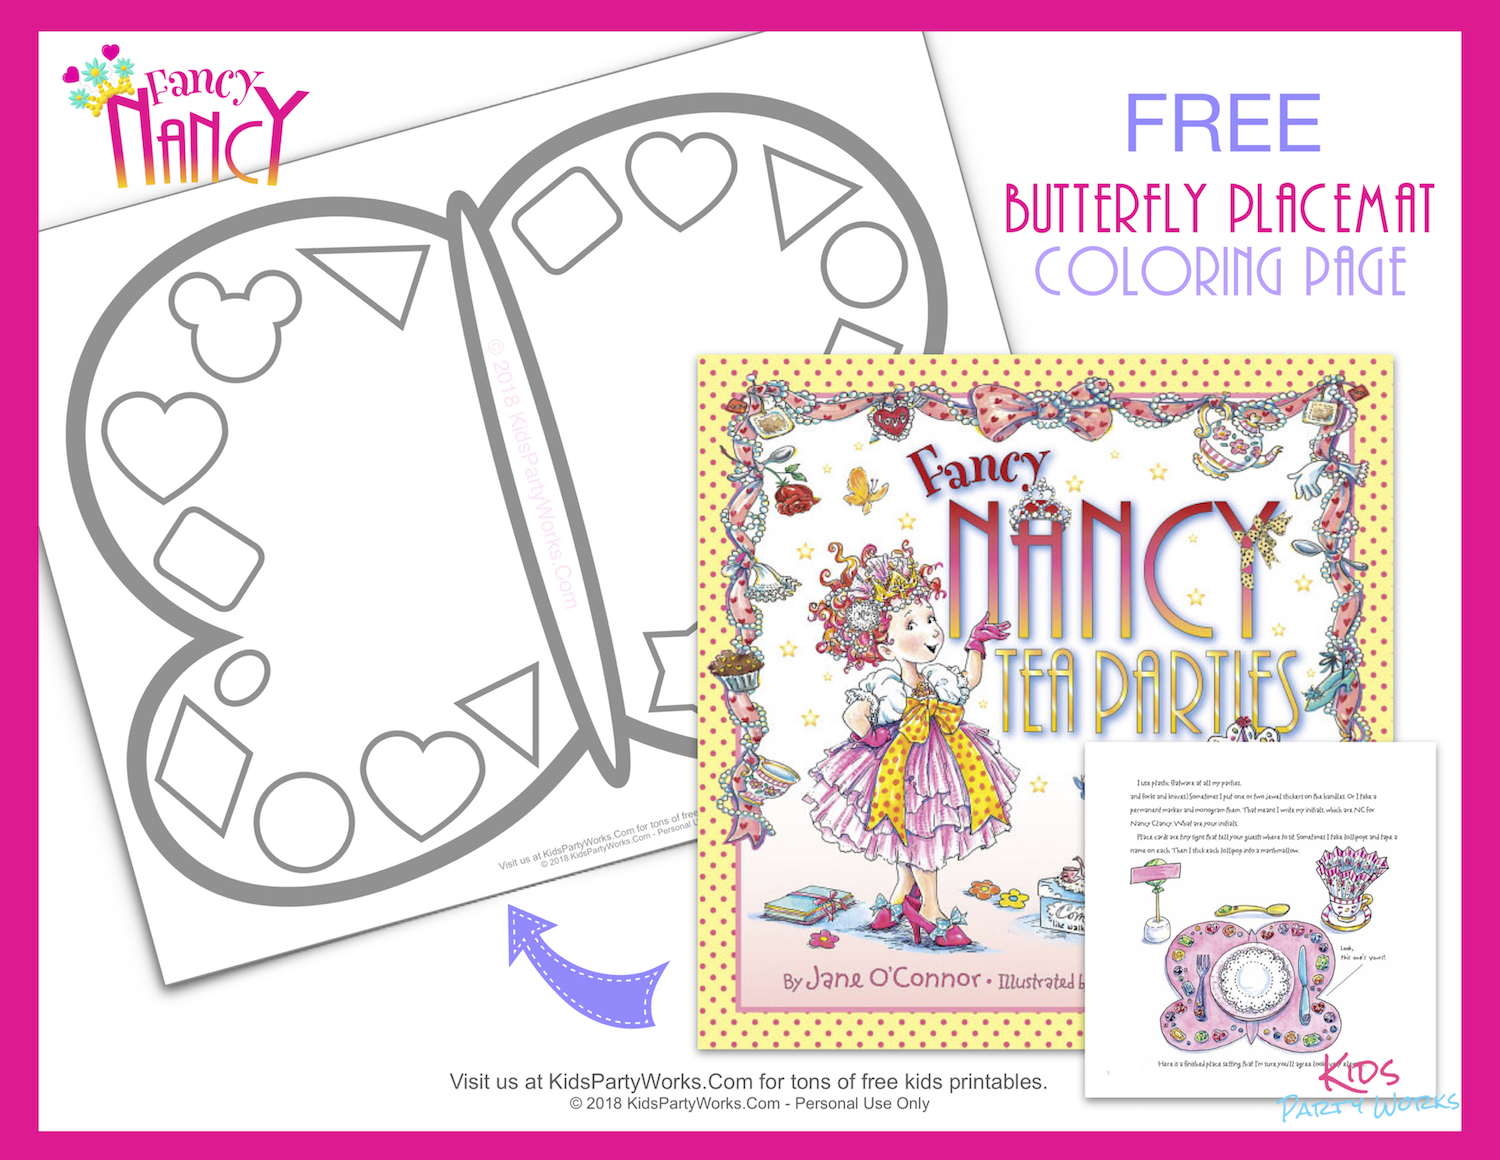 Kids will have fun coloring this Free printable Fancy Nancy Tea Parties butterfly placemat just like in the book.